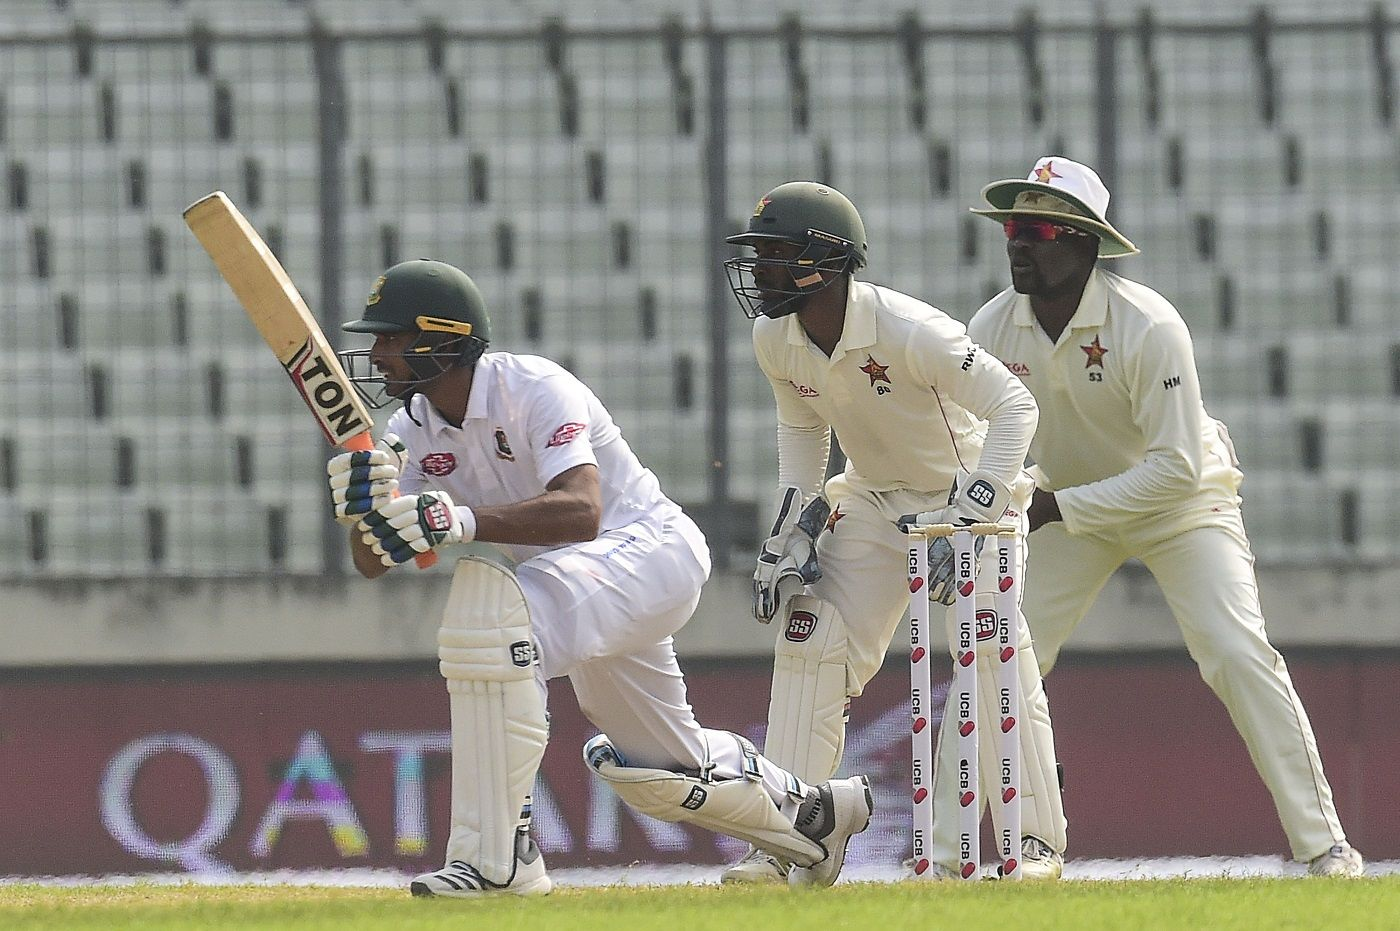 Mahmudullah's 101* was his first Test century since 2010.